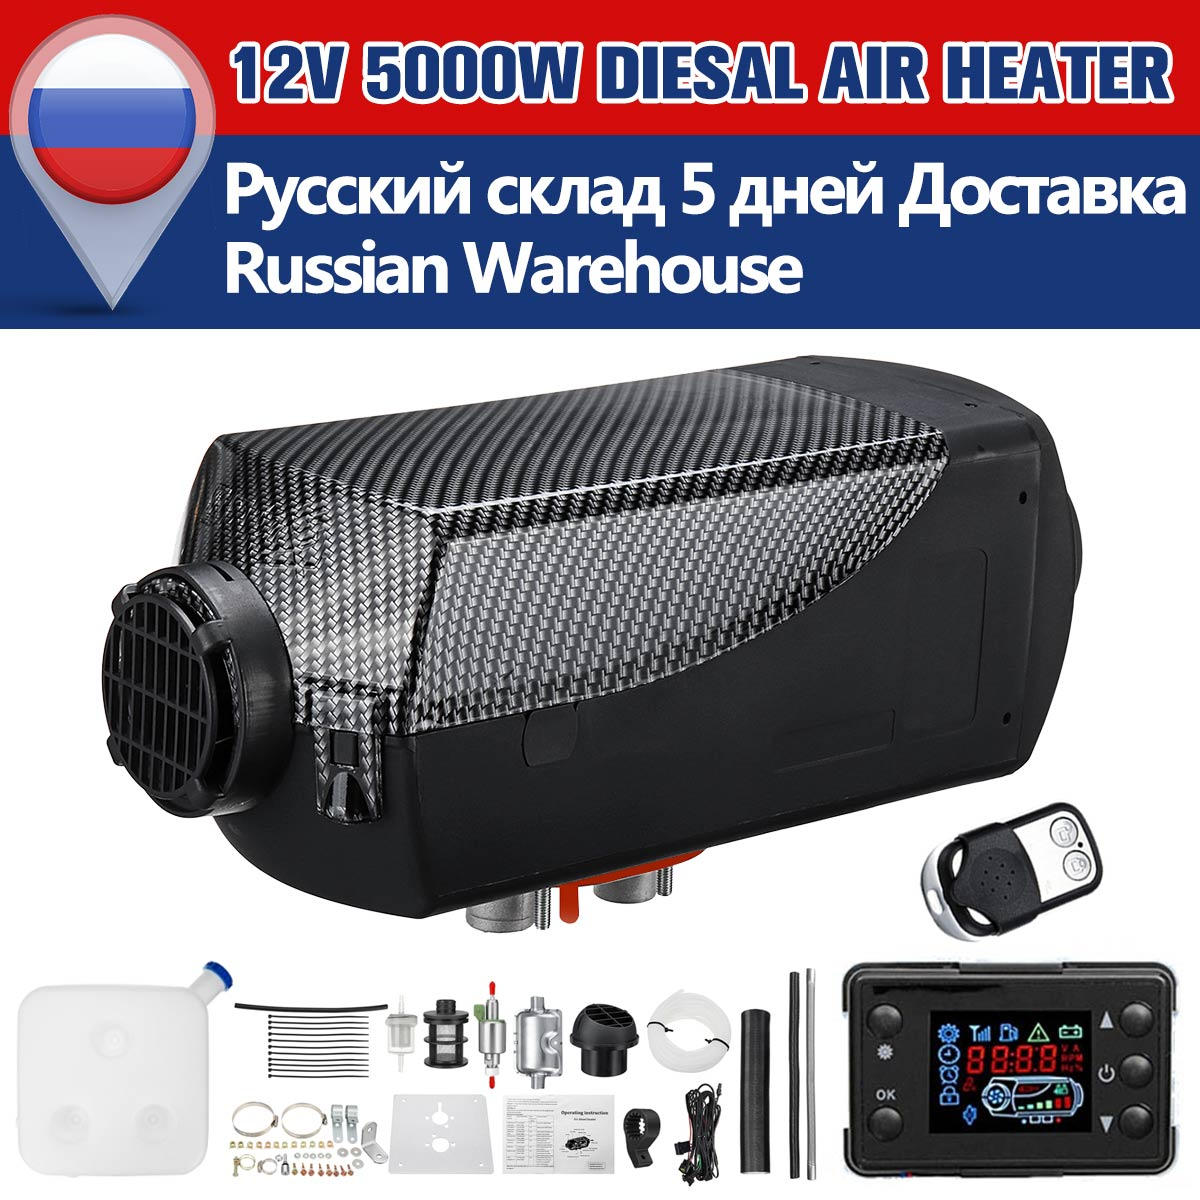 Fast Ship 12V 5KW Diesel Air Heater LCD For Car Trucks Boats Motor Home Monitor for RV Motorhome Trailer With Remote Winter Warm title=